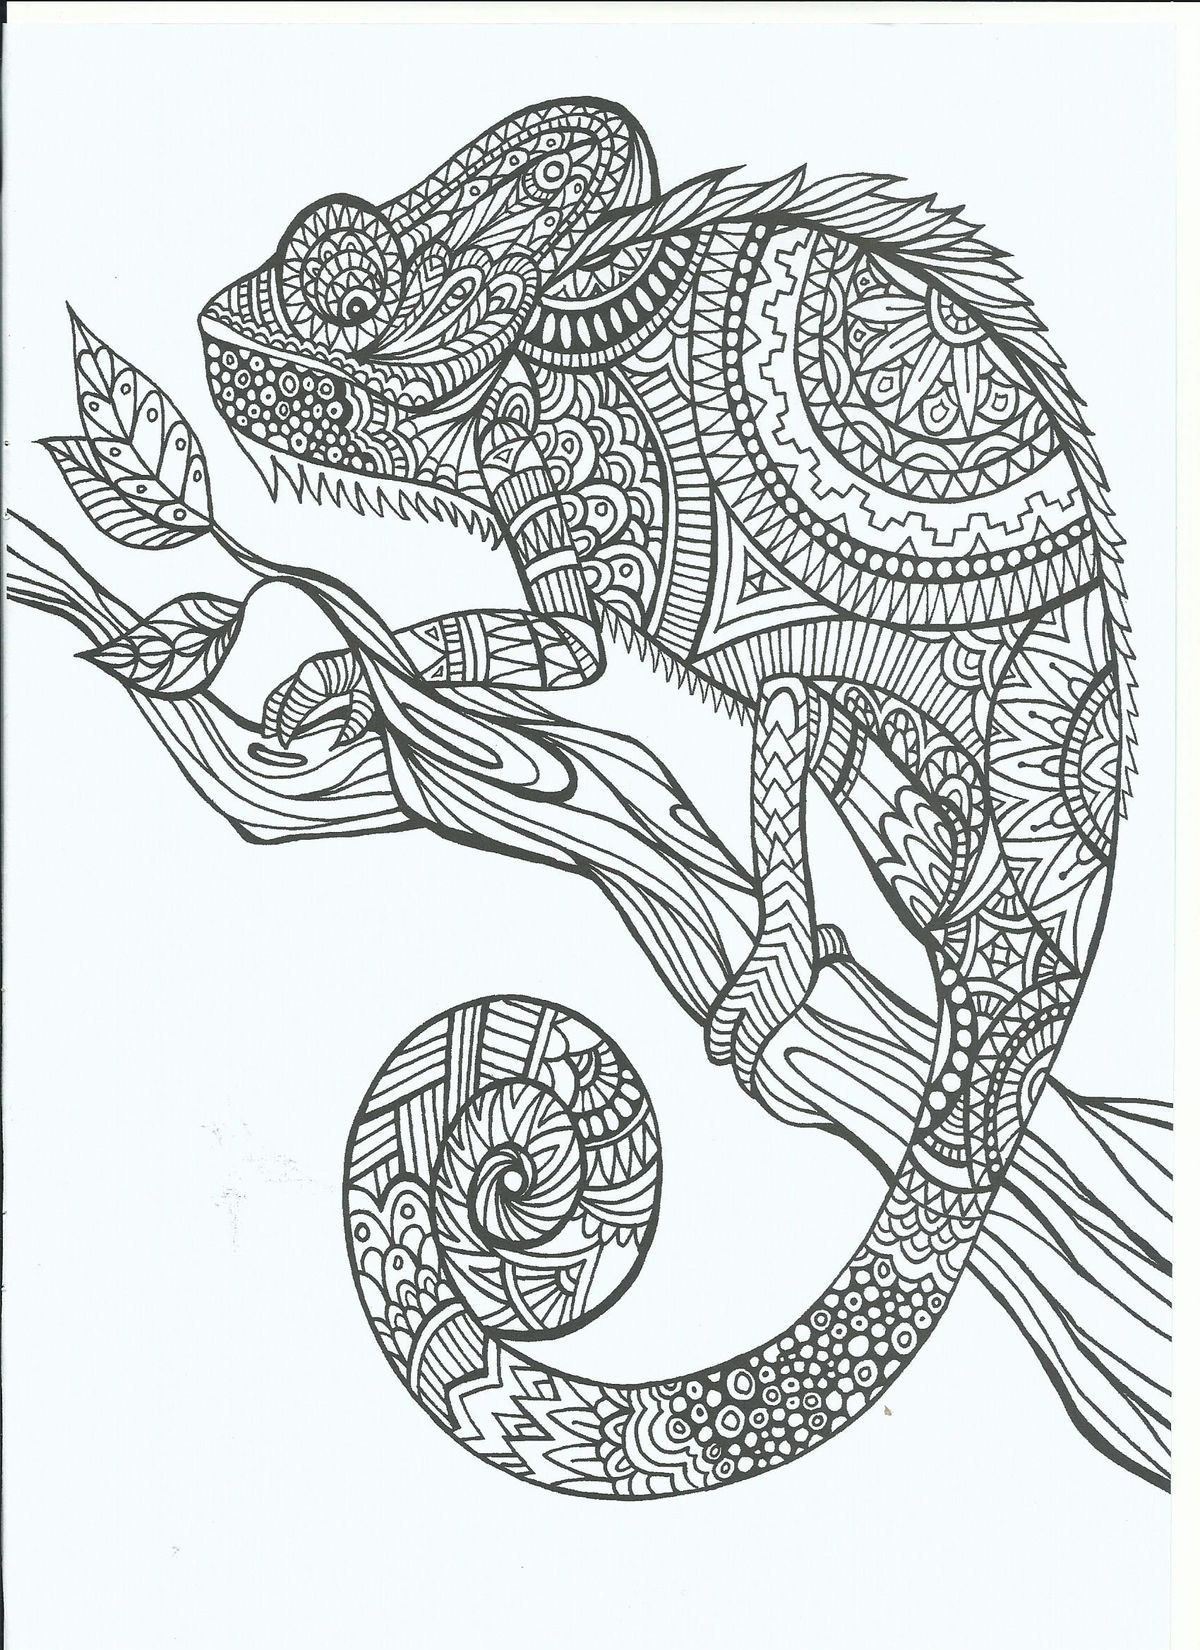 Sw swear word coloring pages etsy - Free Coloring Pages For Children And Adults Free Coloring Story Books Dragons Fantasy Animals People And More